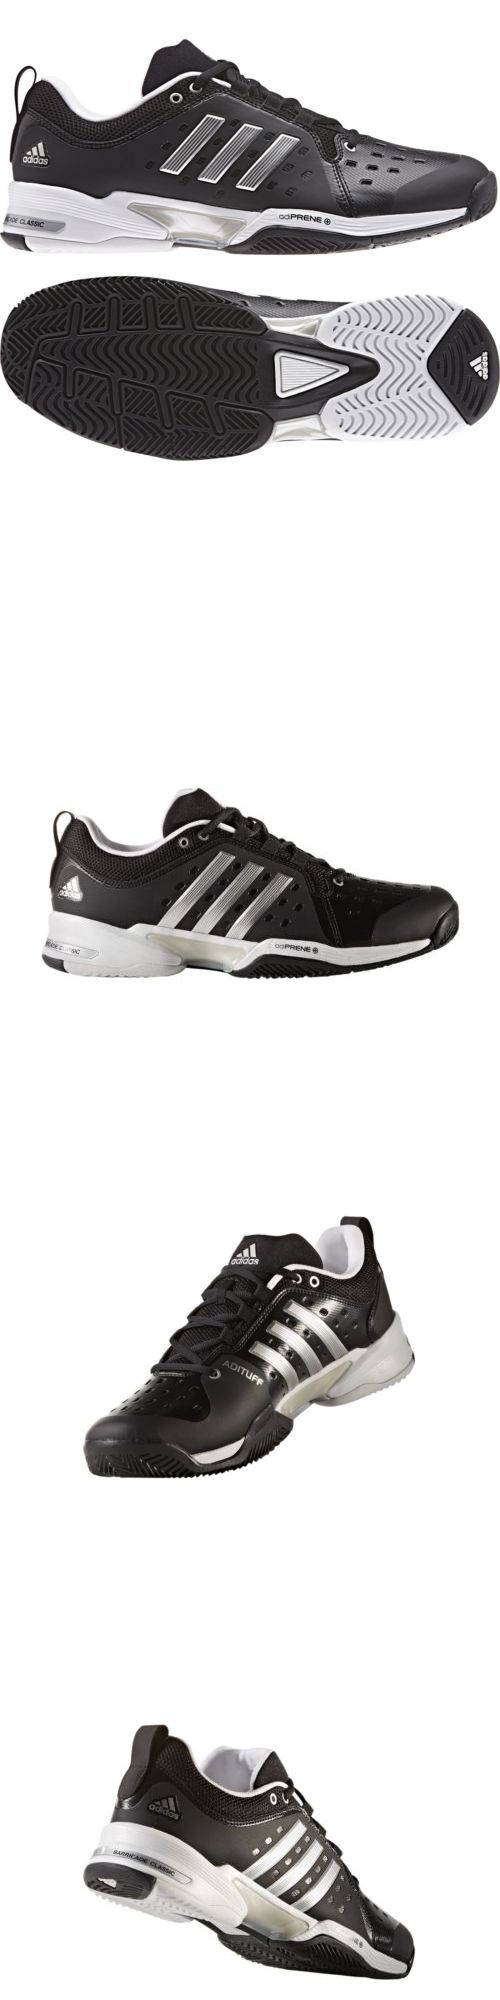 Shoes 62230: Adidas Barricade Bounce Wide 4E White Black Grey Cp8694 + Free Socks -> BUY IT NOW ONLY: $99.95 on eBay!